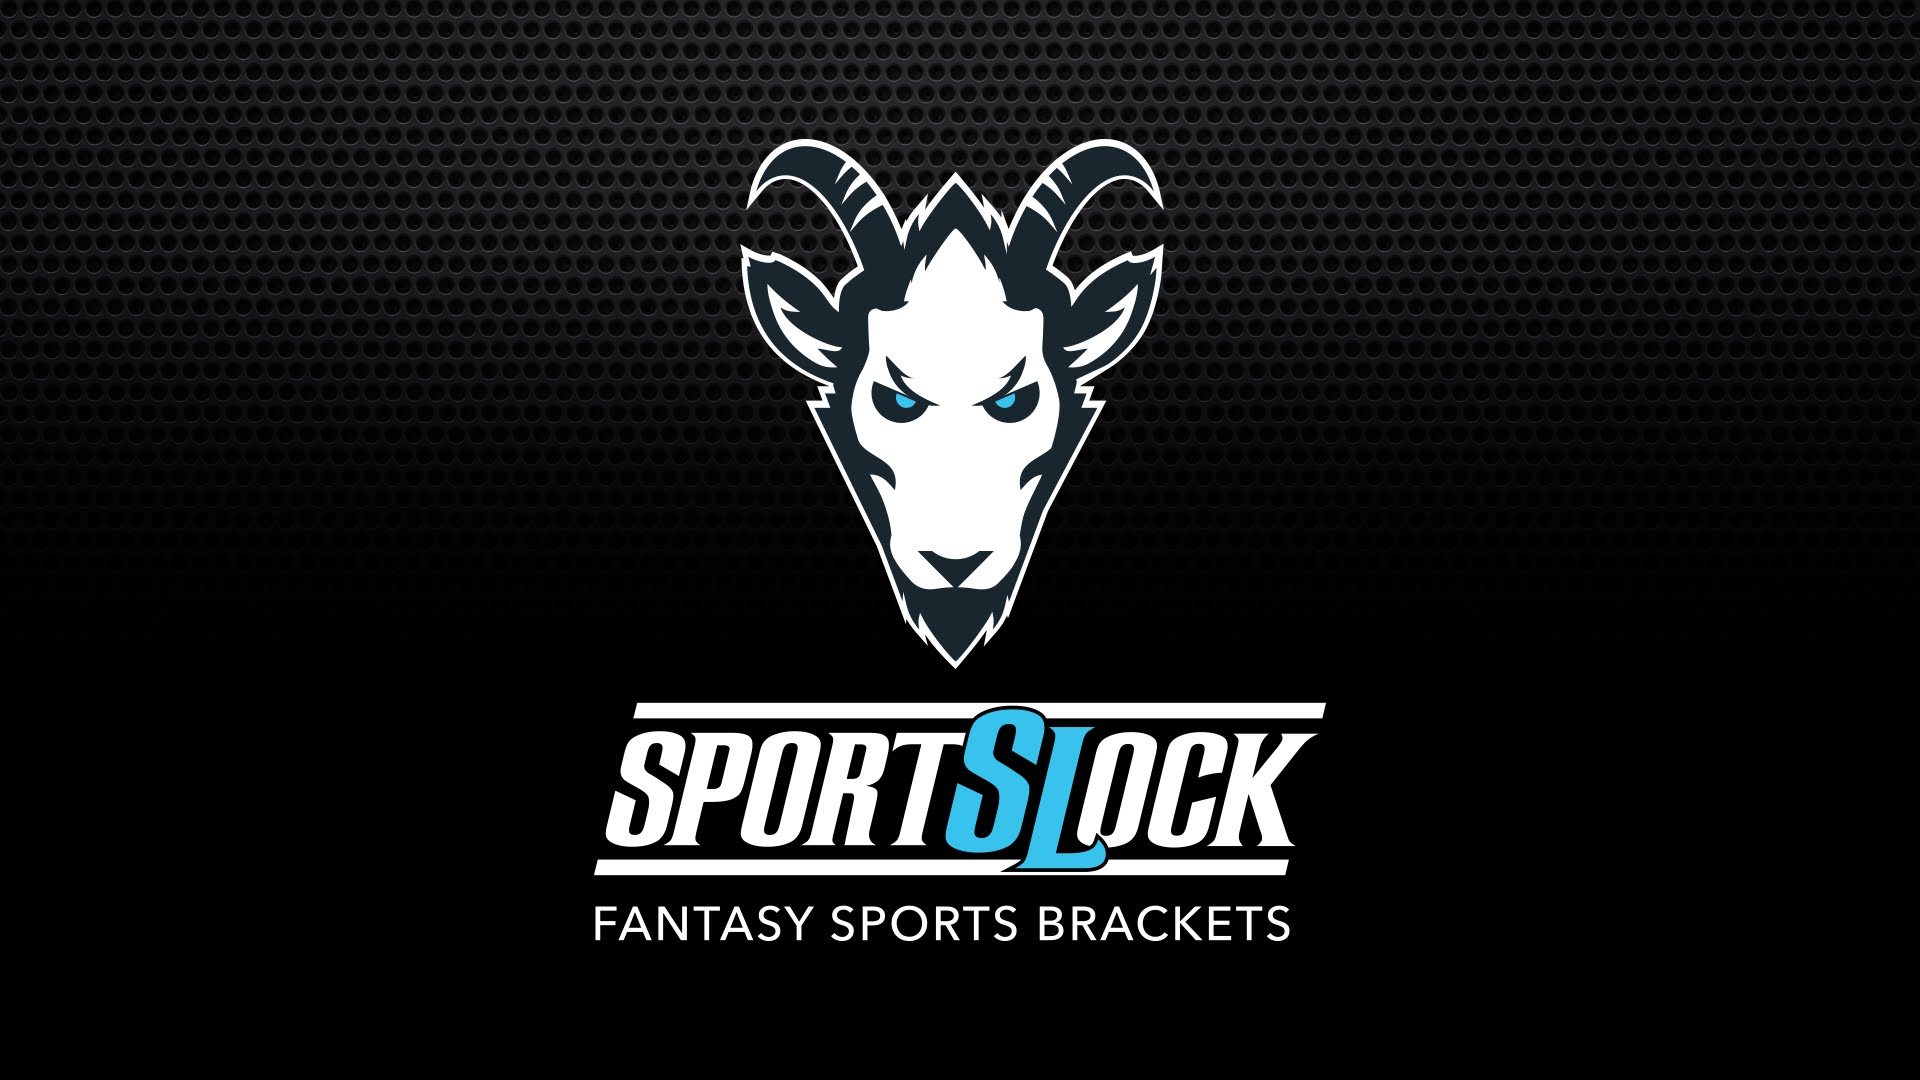 Announcing Our Partnership with 6 Million Dollar Company Sports Lock!